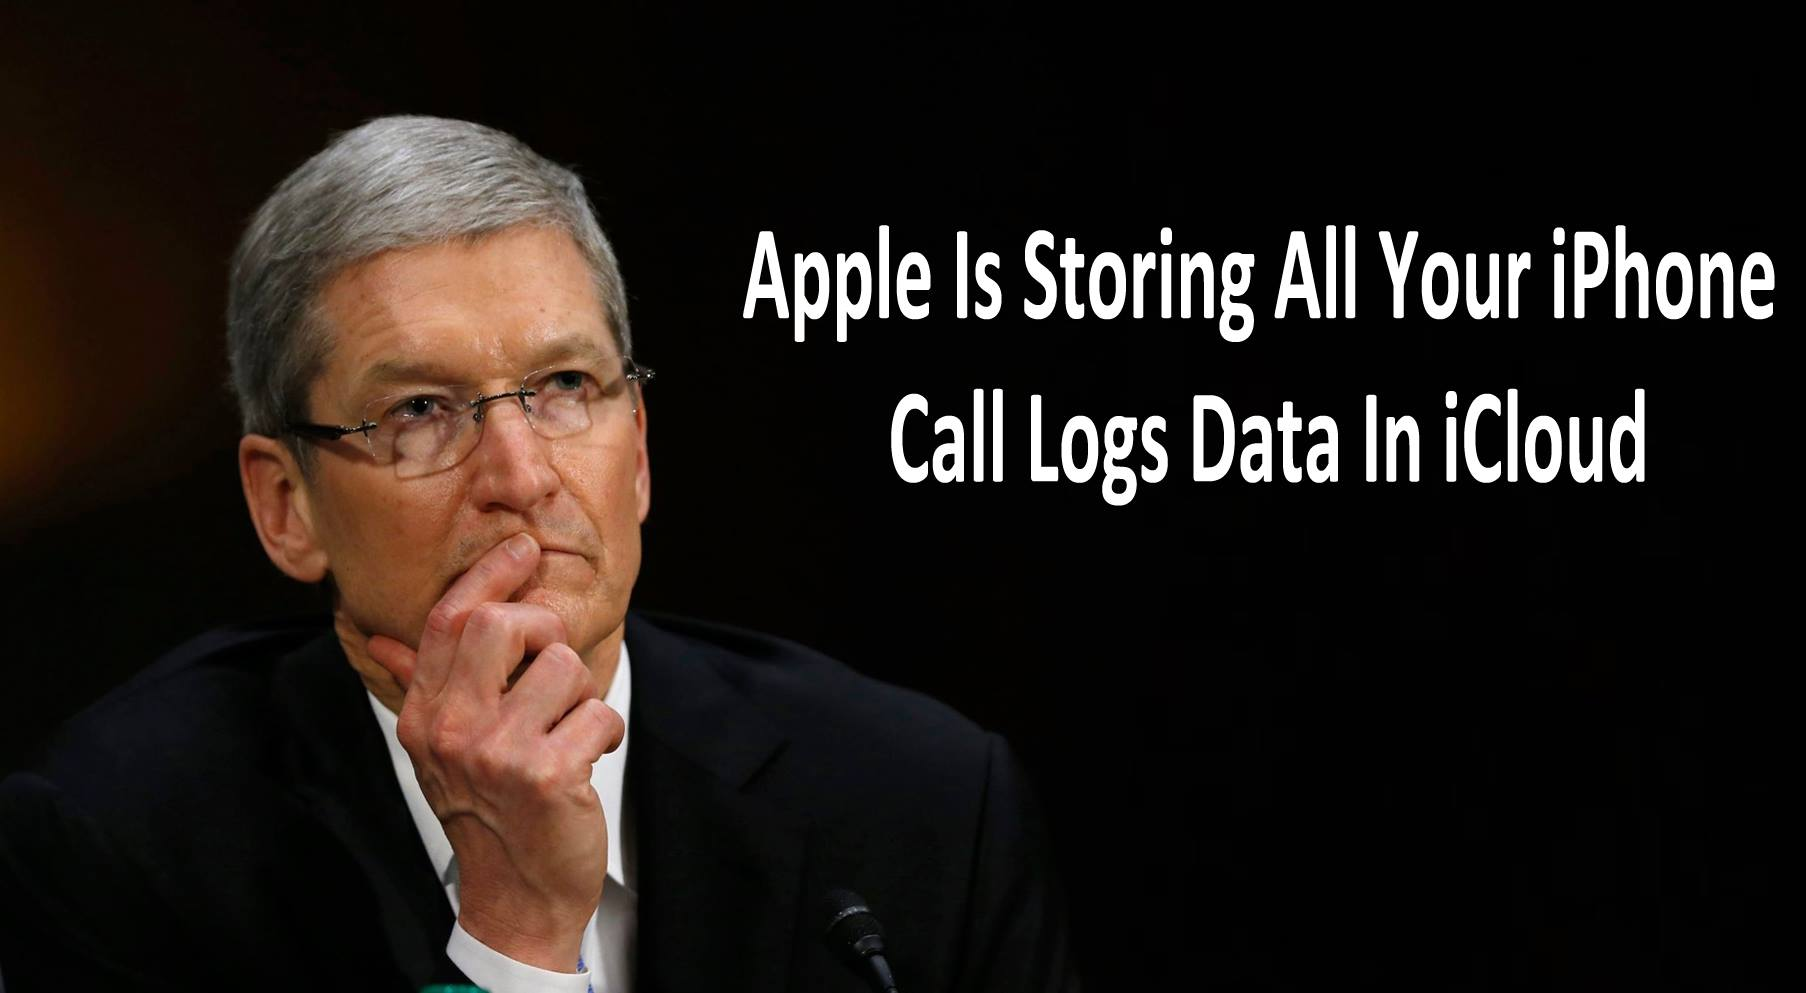 Apple Is Storing All Your iPhone Call Logs Data In iCloud